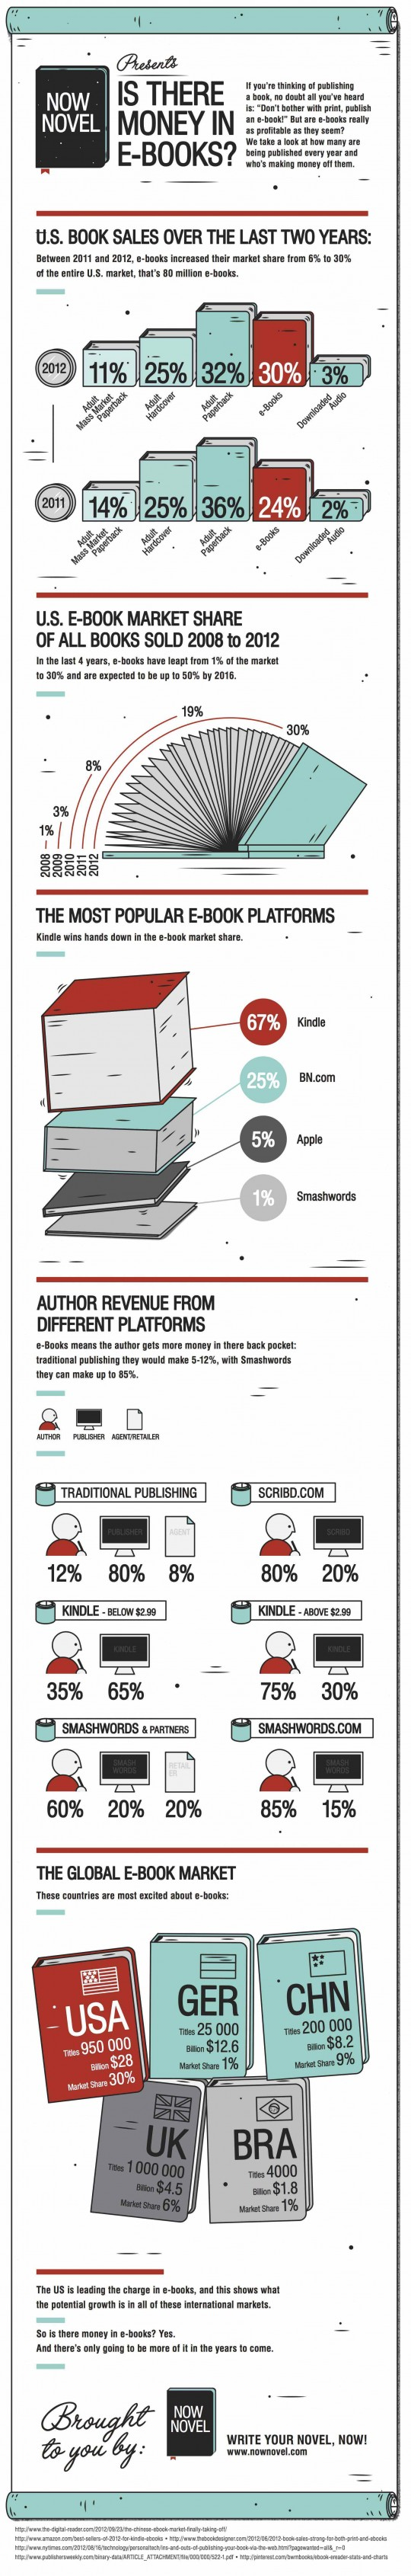 Is-there-money-in-ebooks-infographic-540x3381